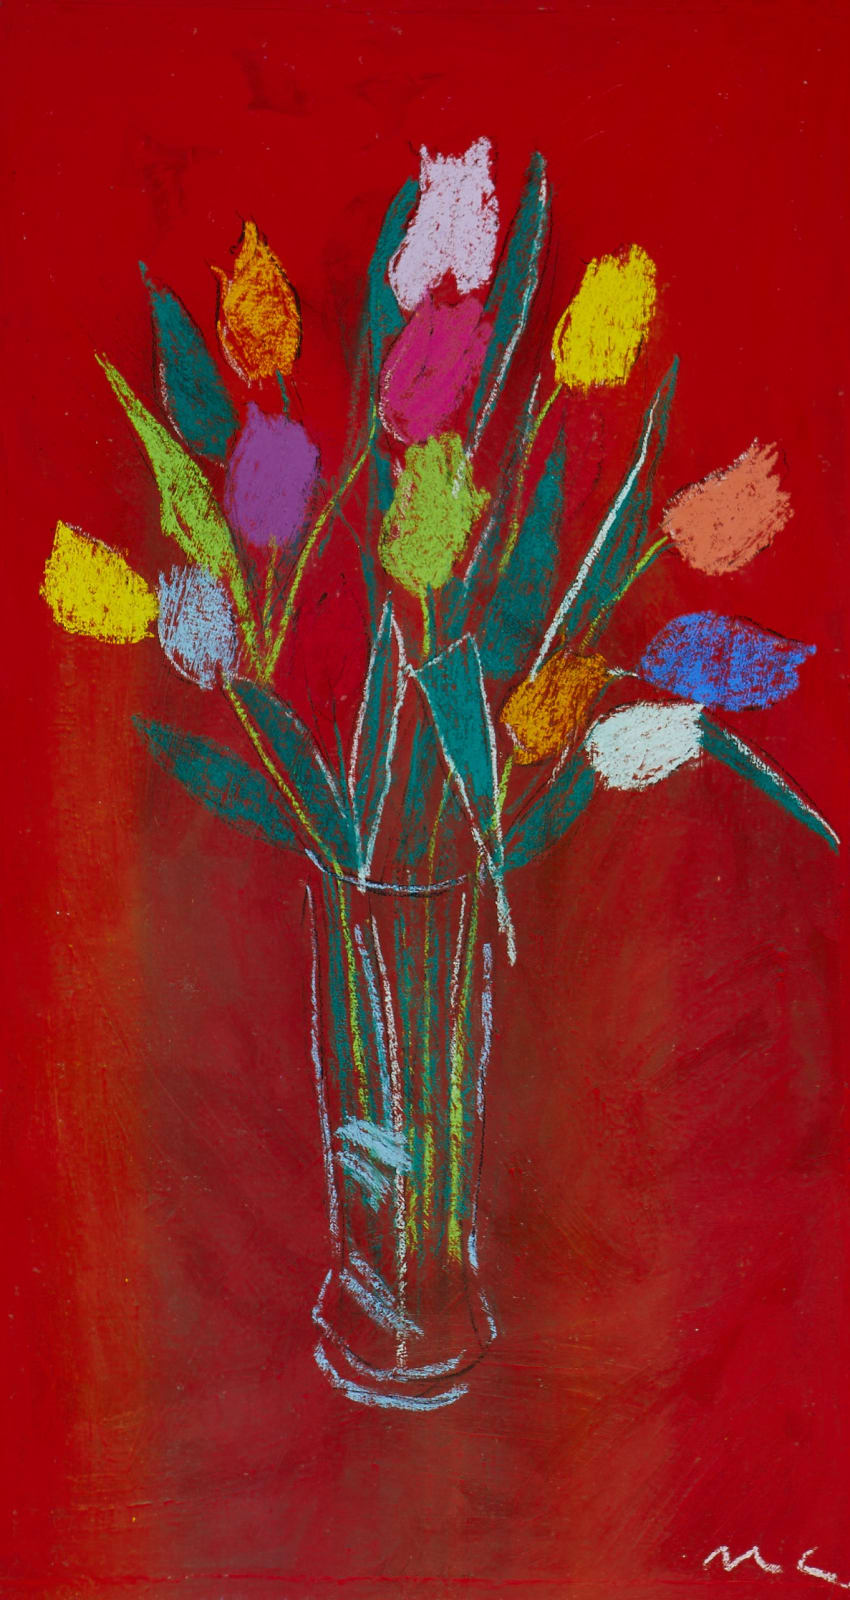 MICHAEL COLEMAN, TULIPS ON RED, 2019